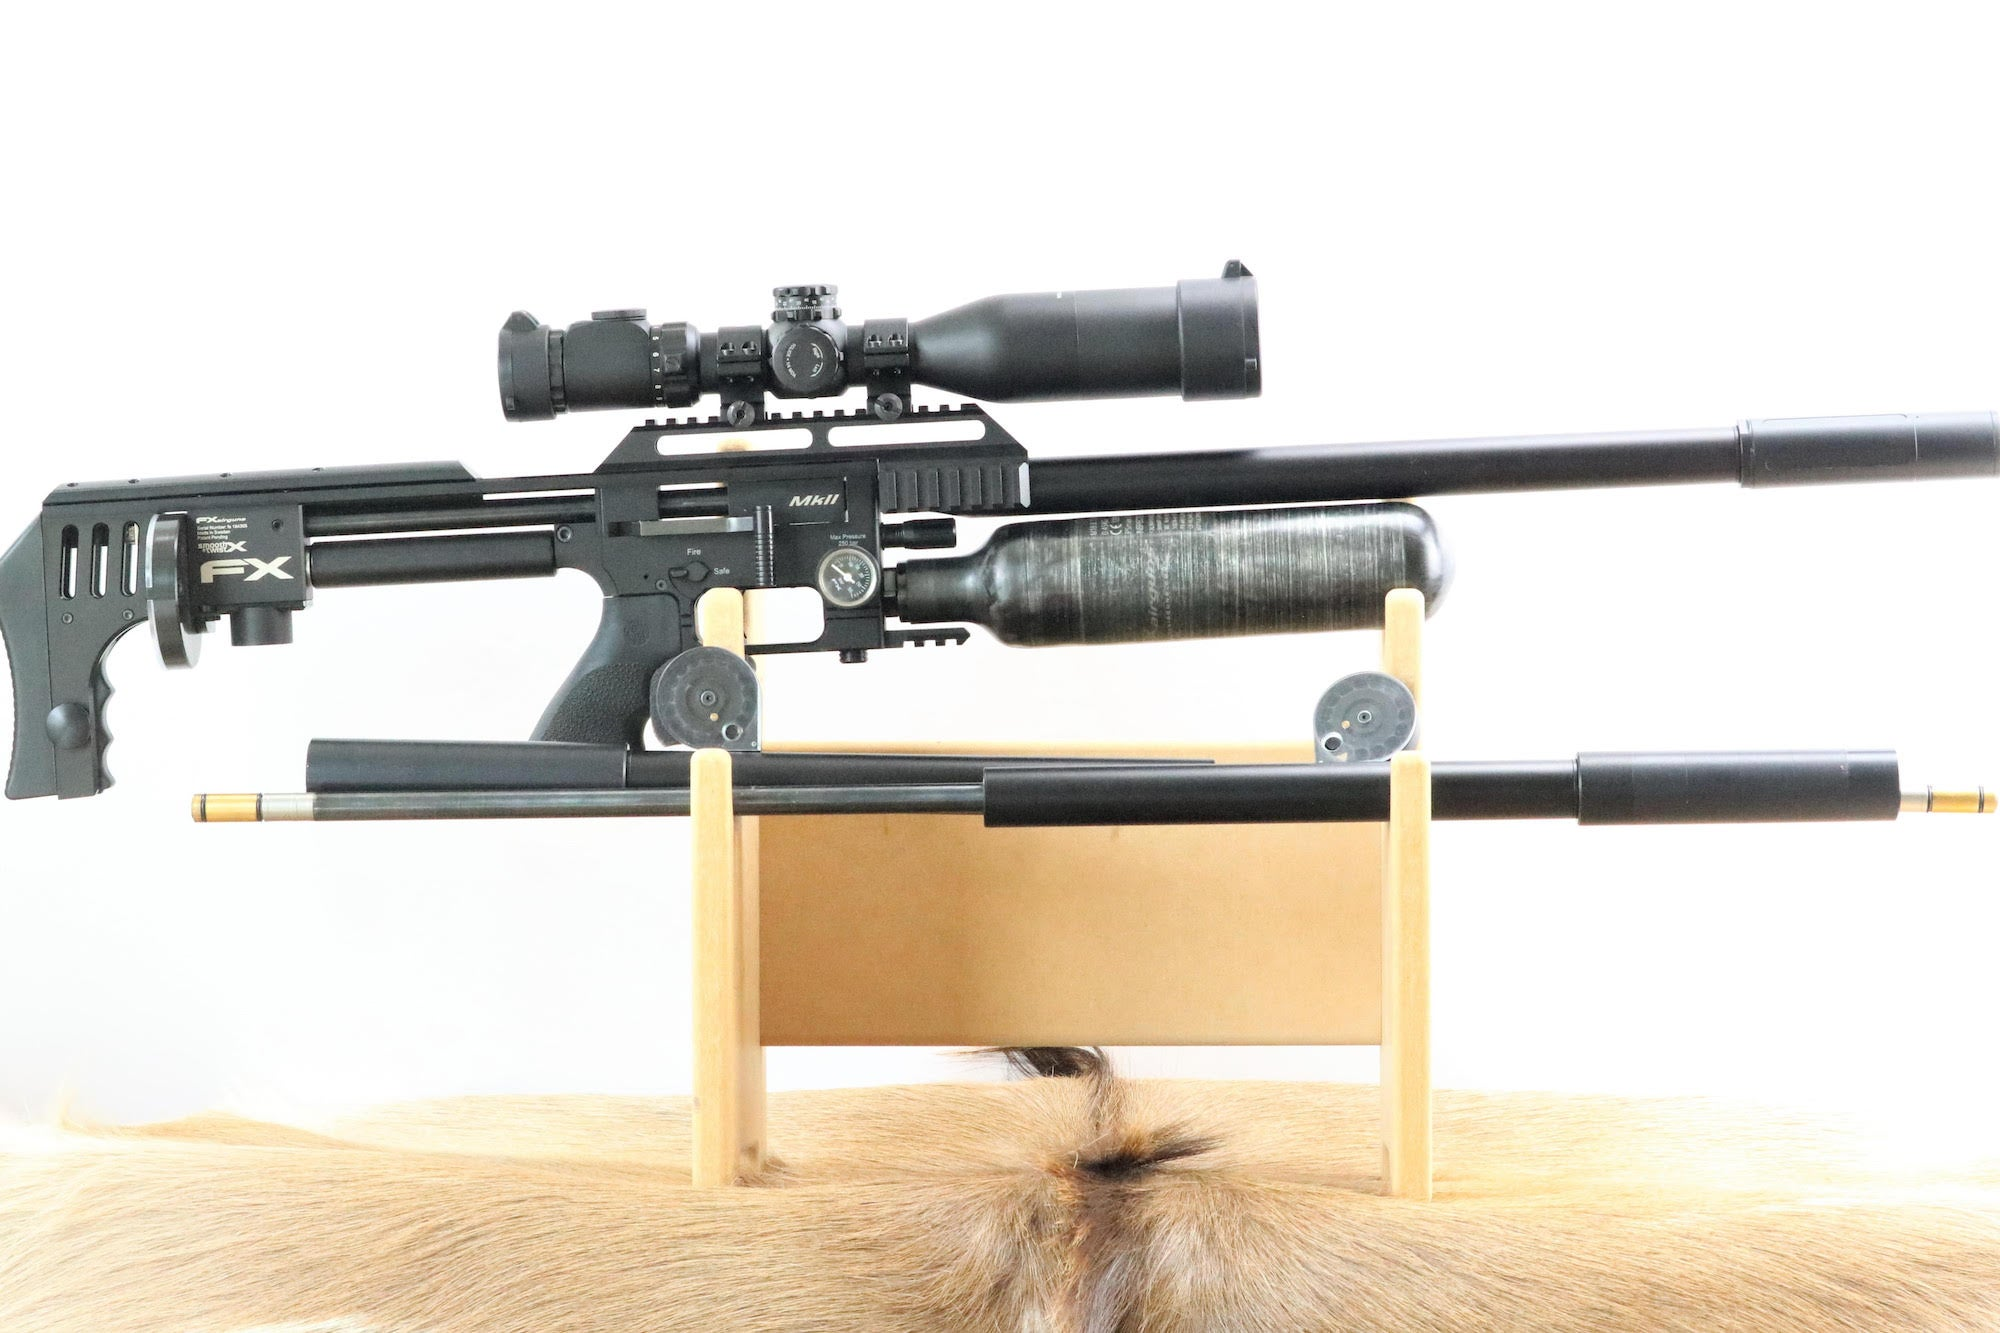 The FX Impact is our pick for best air rifle